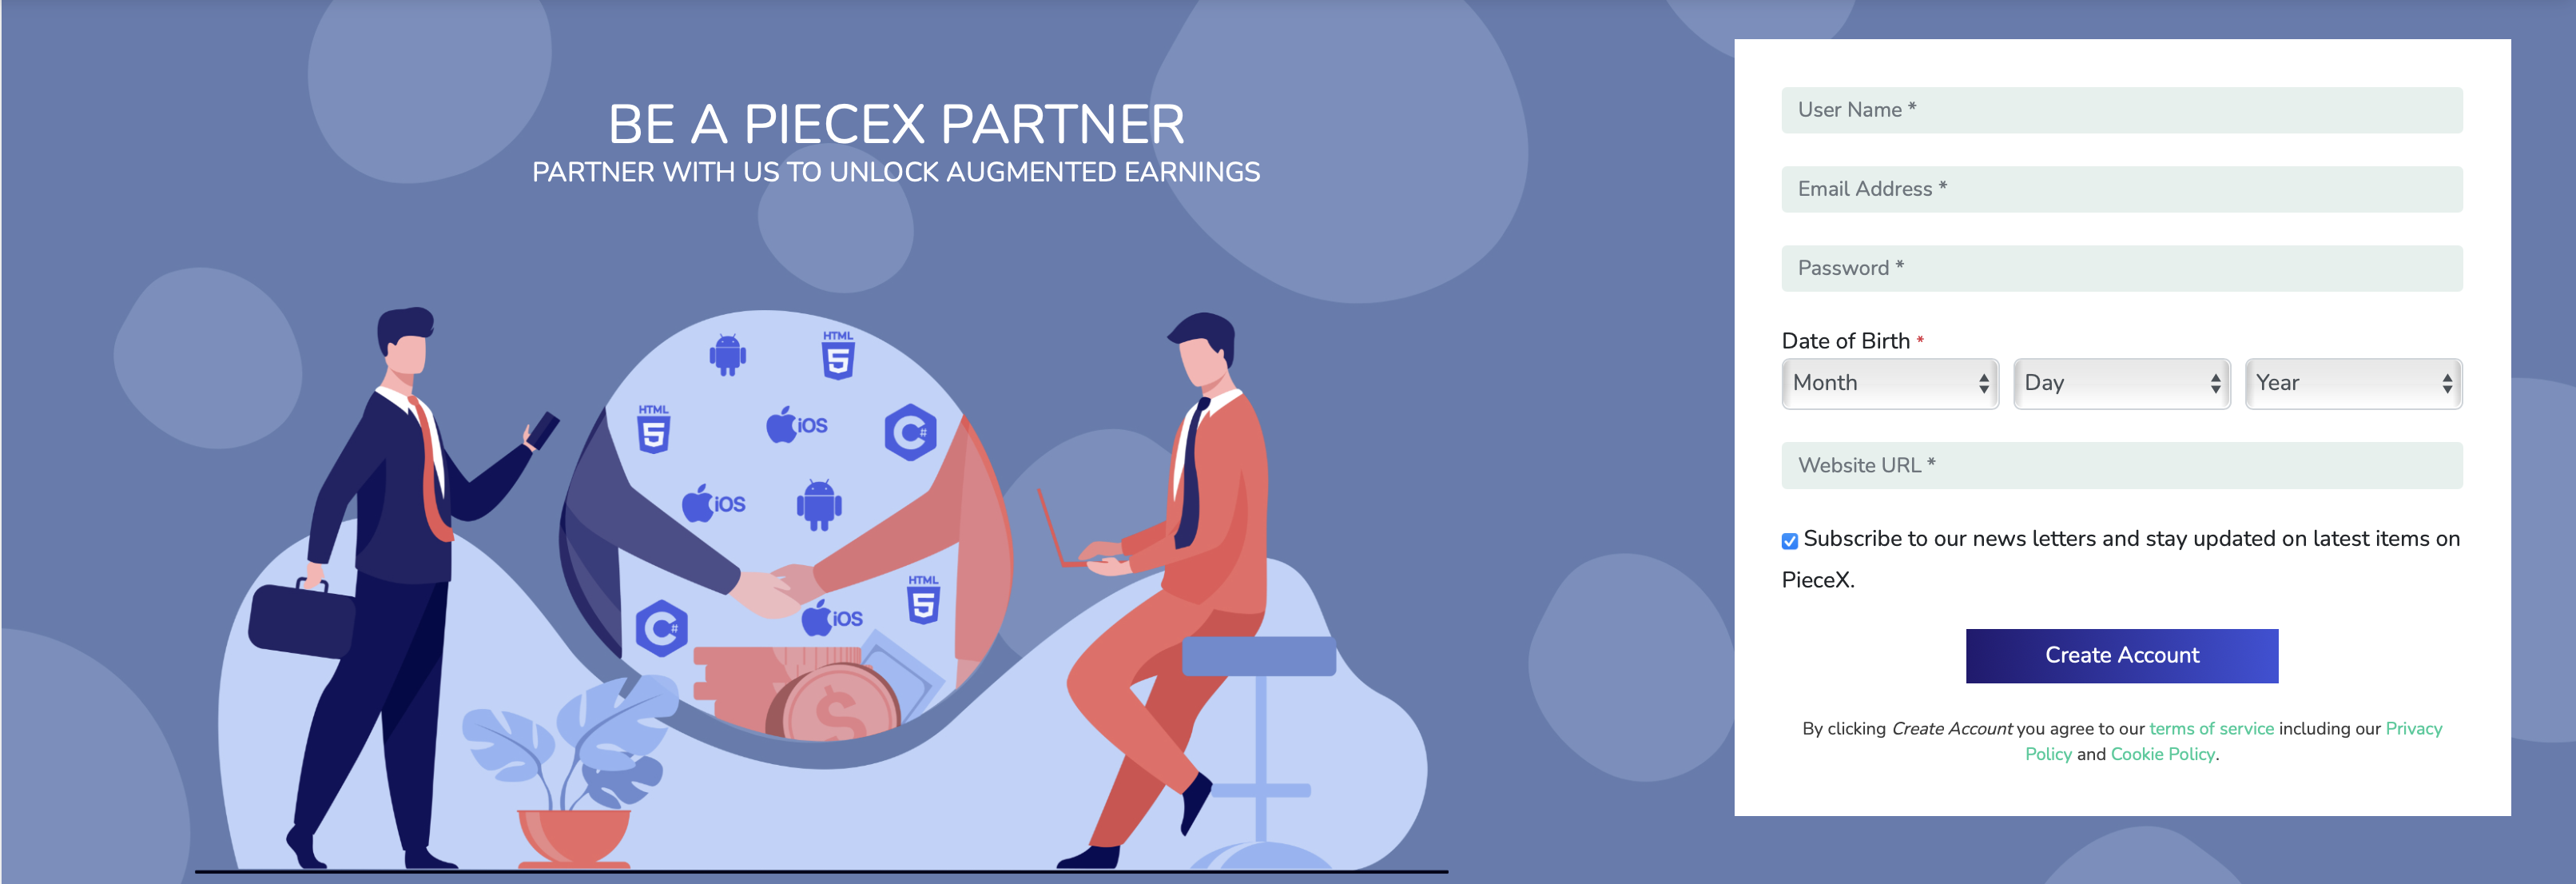 PieceX Partner program, sell source code with us